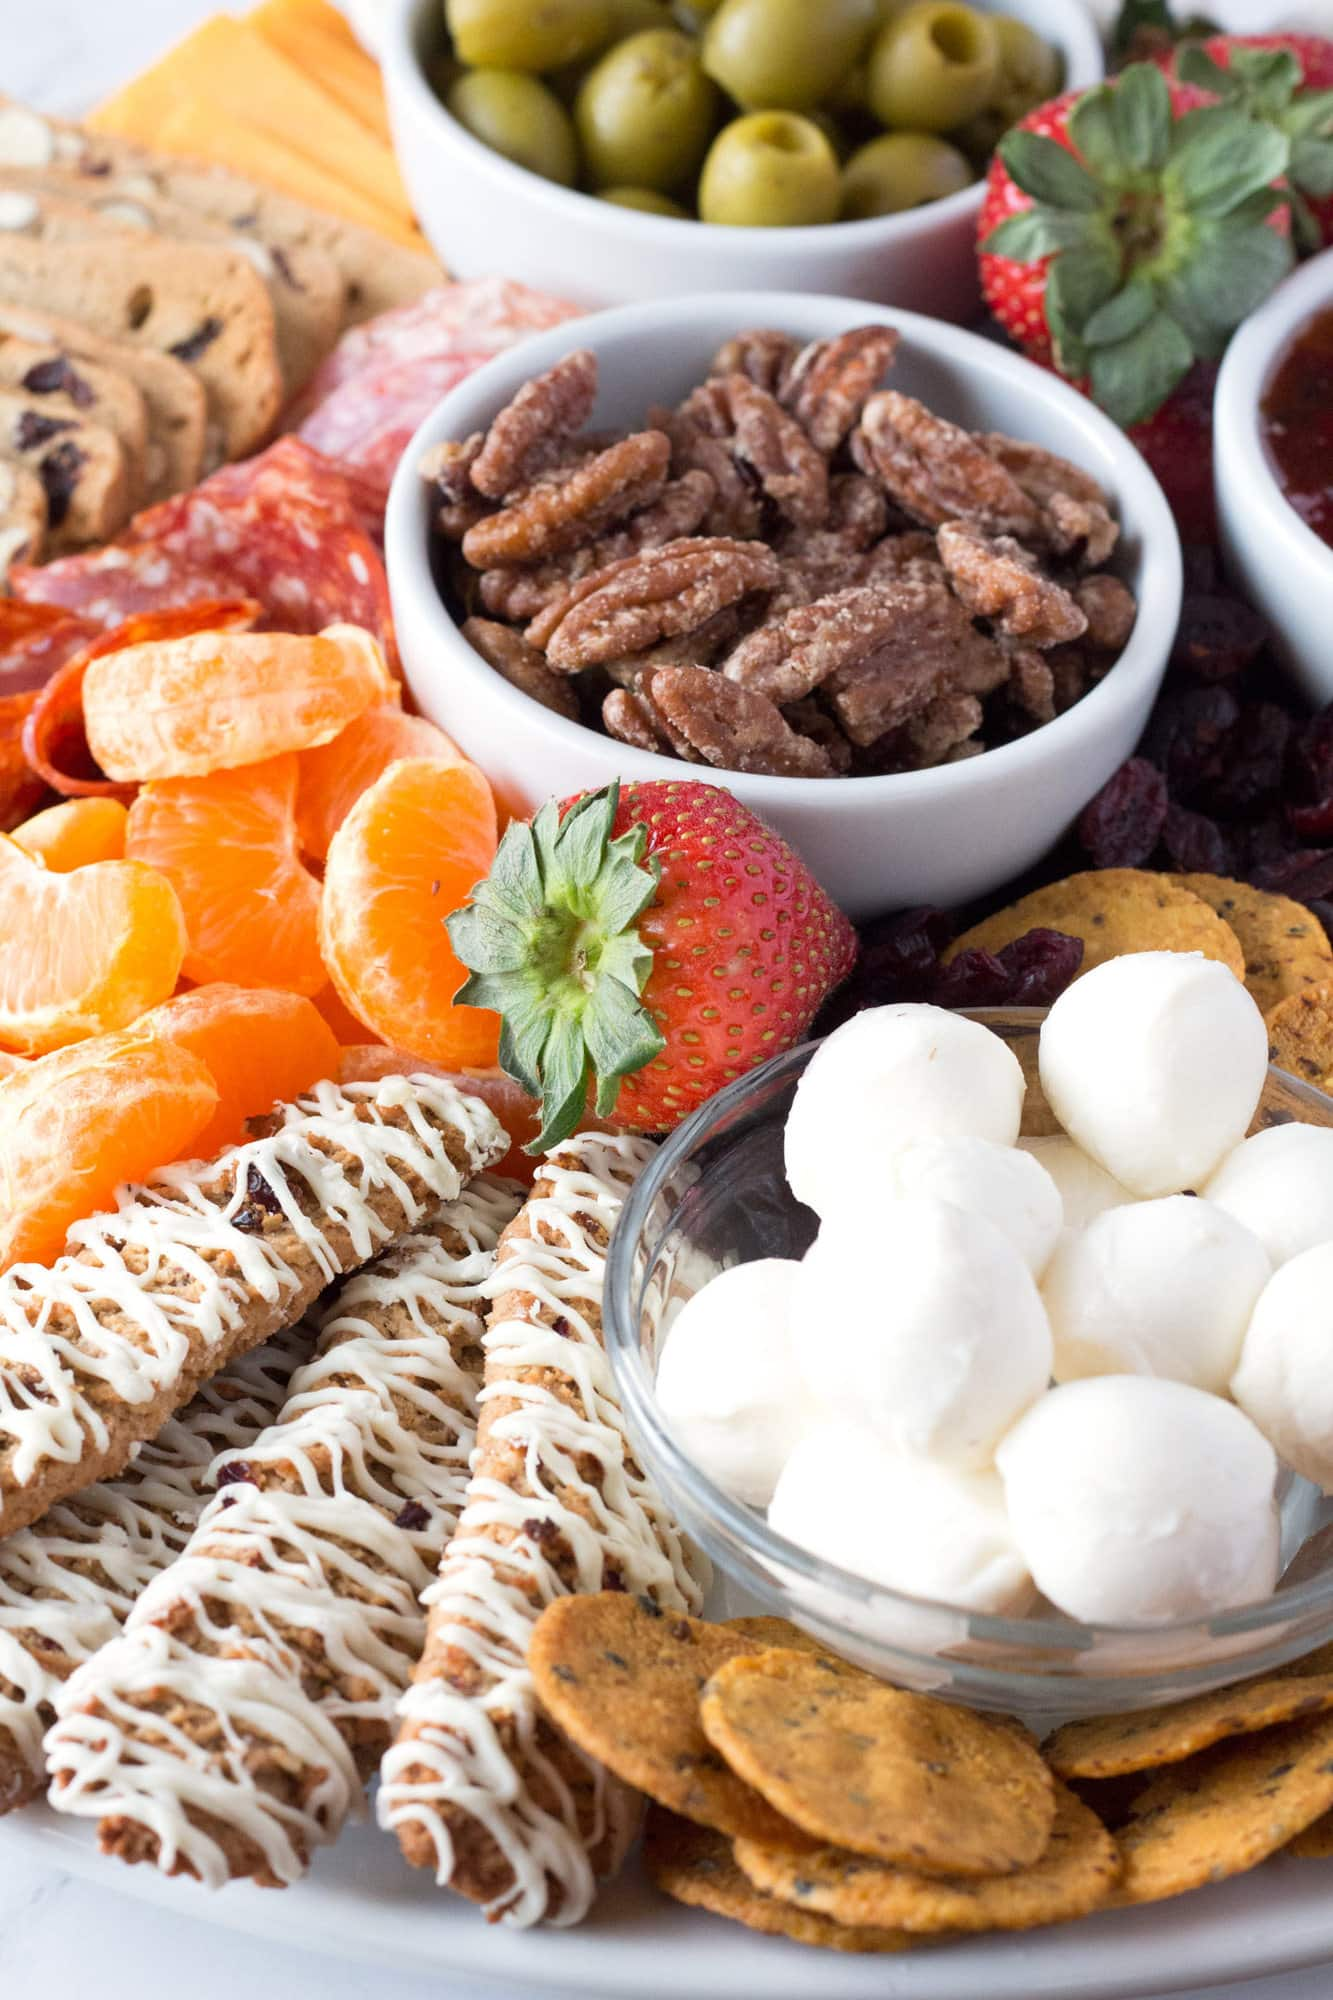 Sweet and salty snack board ideas arranged on white platter.